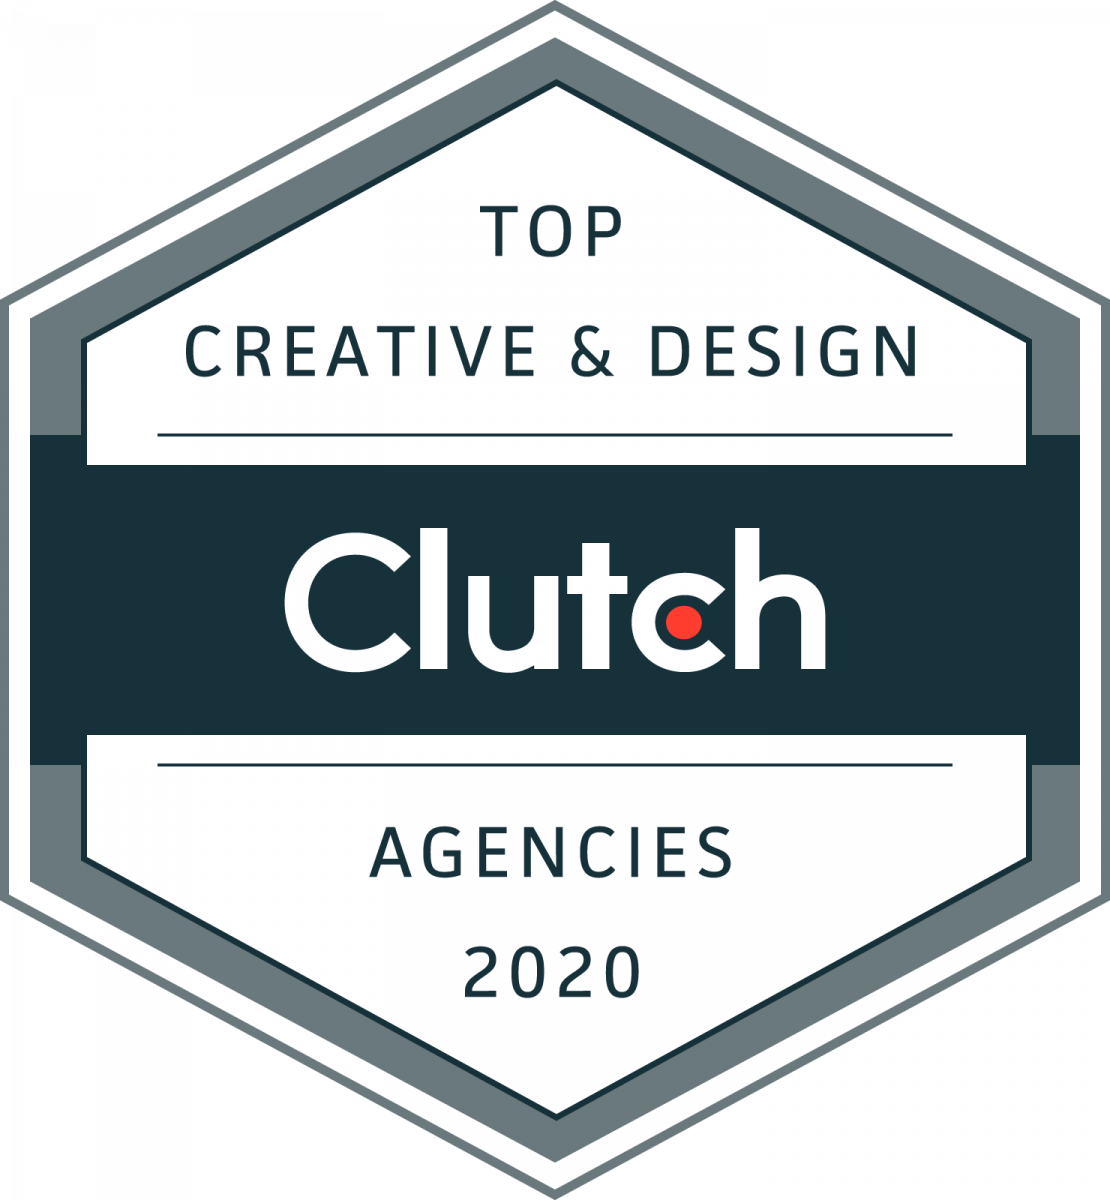 Top Creative & Design Agencies